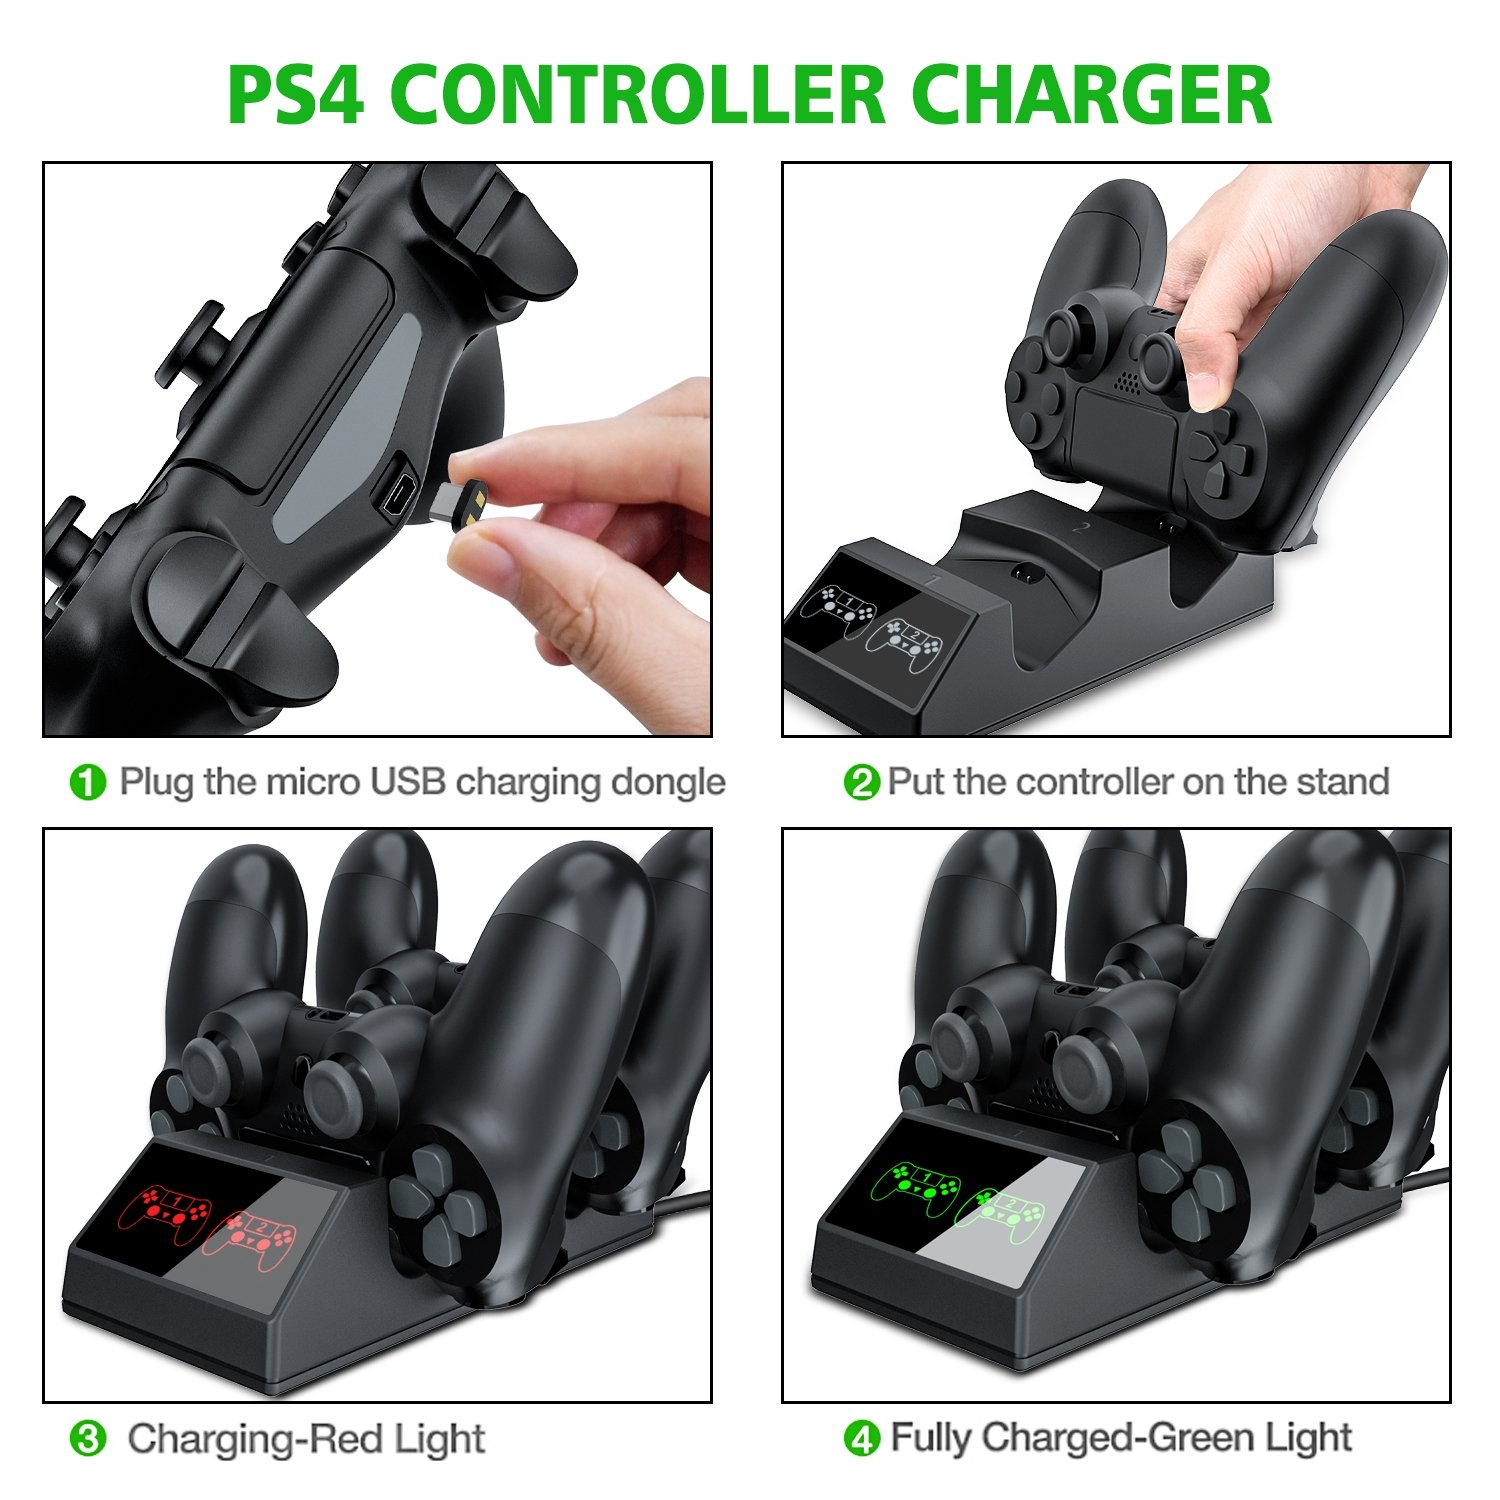 PS4 Controller Charger, BEBONCOOL PS4 Charger with USB PS4 Charging Cable, PS4 Charging Dock for Sony PS4/PS4 Slim/PS4 Pro Controllers with 4 Micro USB Charging Dongles